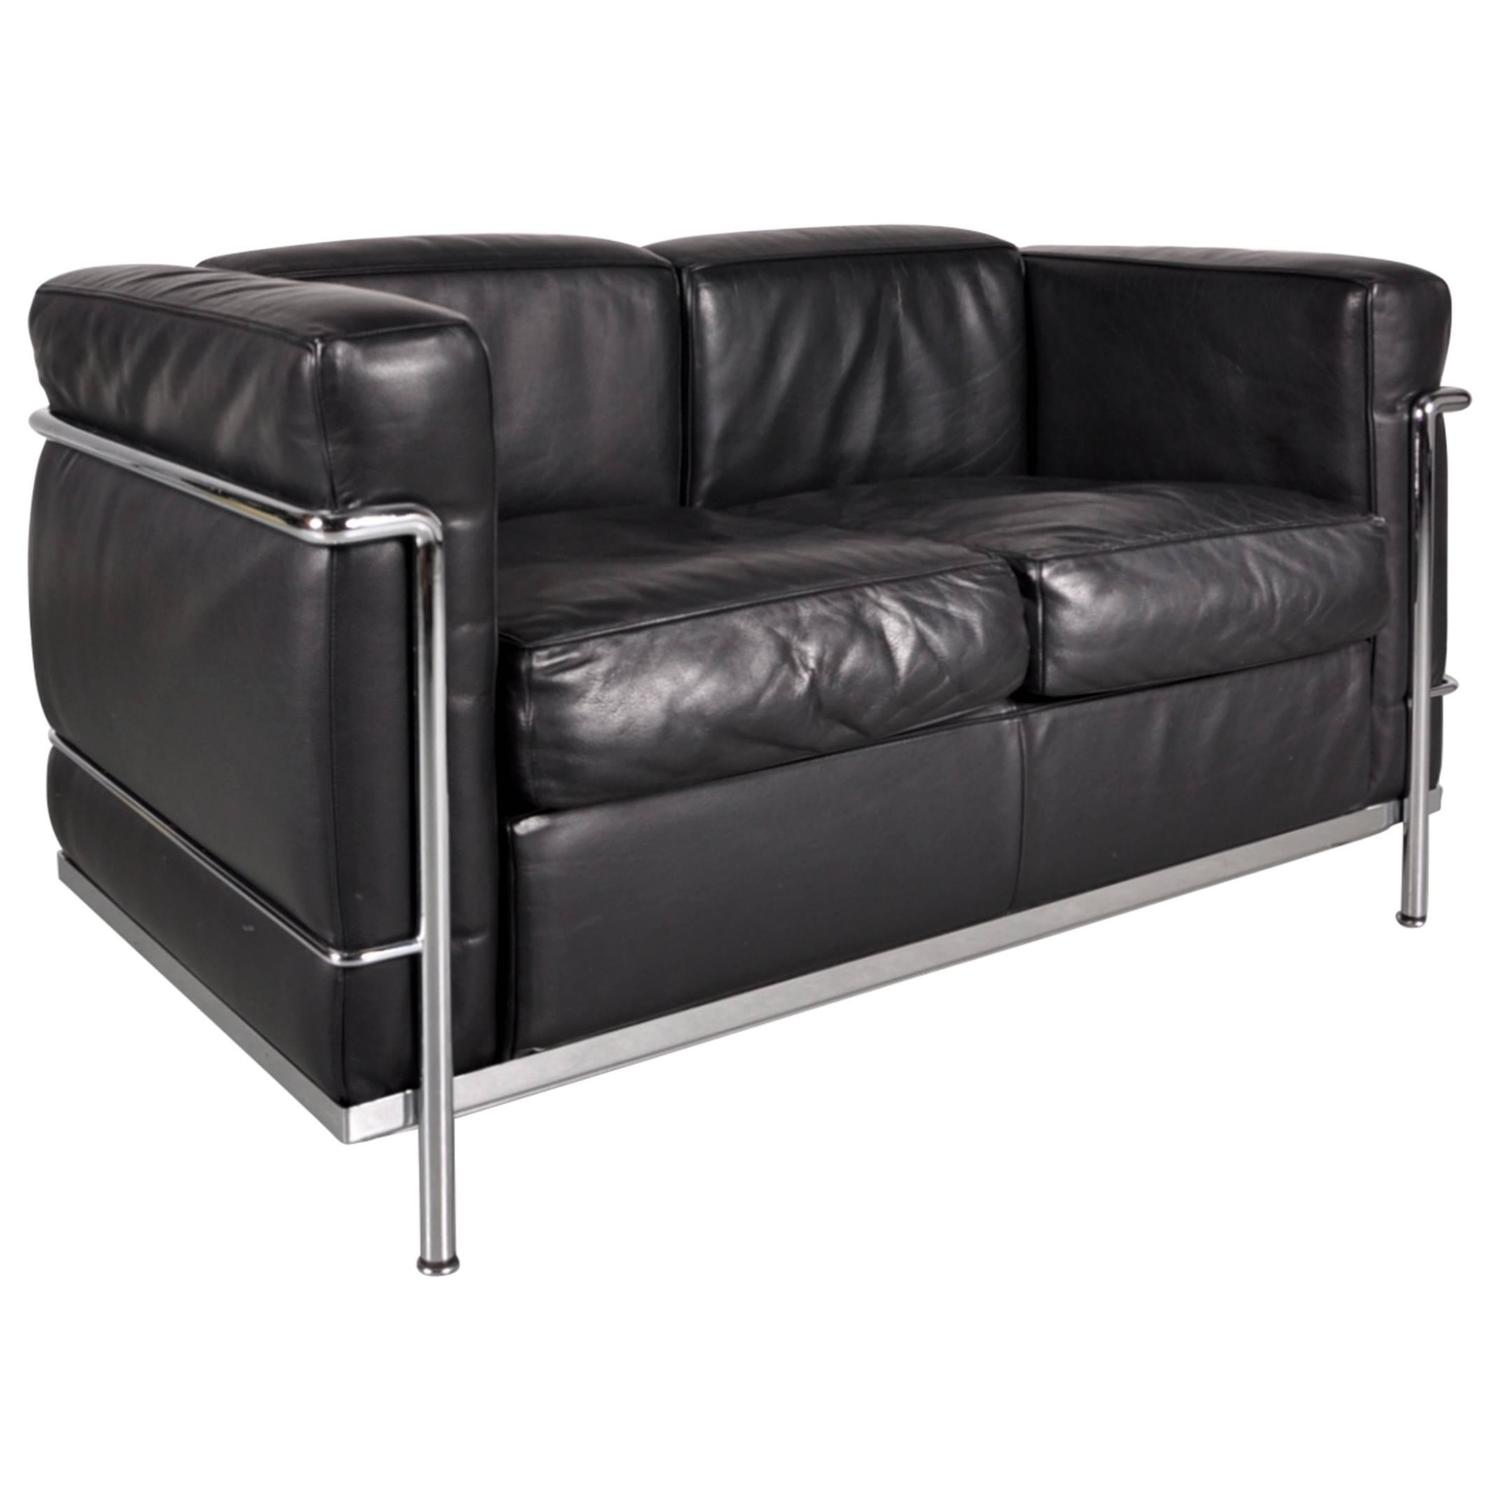 le corbusier lc3 sofa lc3 sofa corbusier zweisitzer reproduktion thesofa. Black Bedroom Furniture Sets. Home Design Ideas